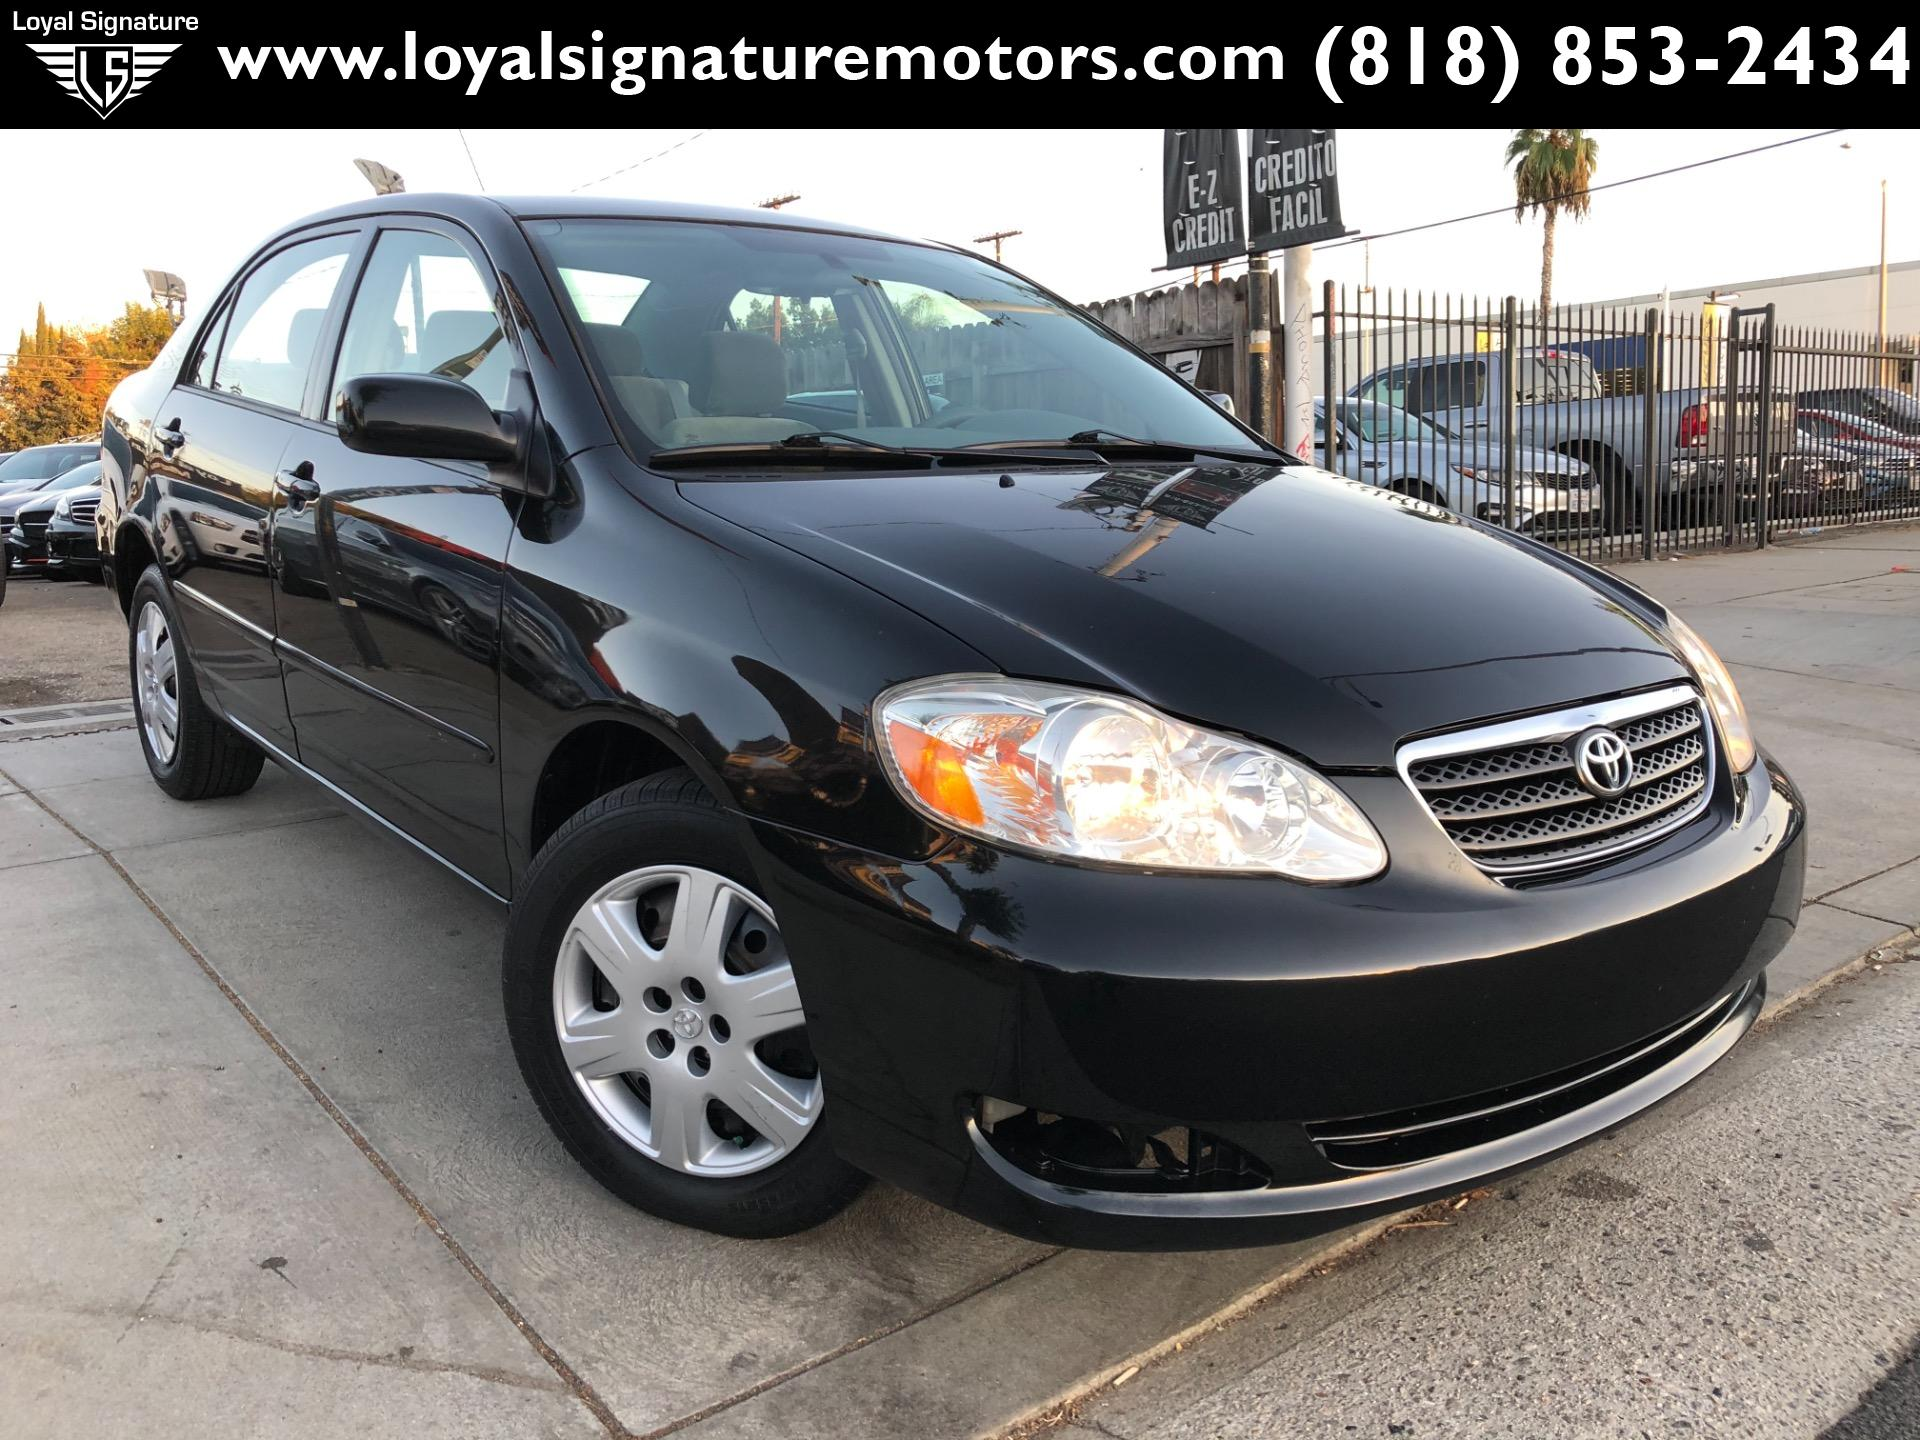 Used toyota Corolla Lovely Used 2006 toyota Corolla Le for Sale $5 995